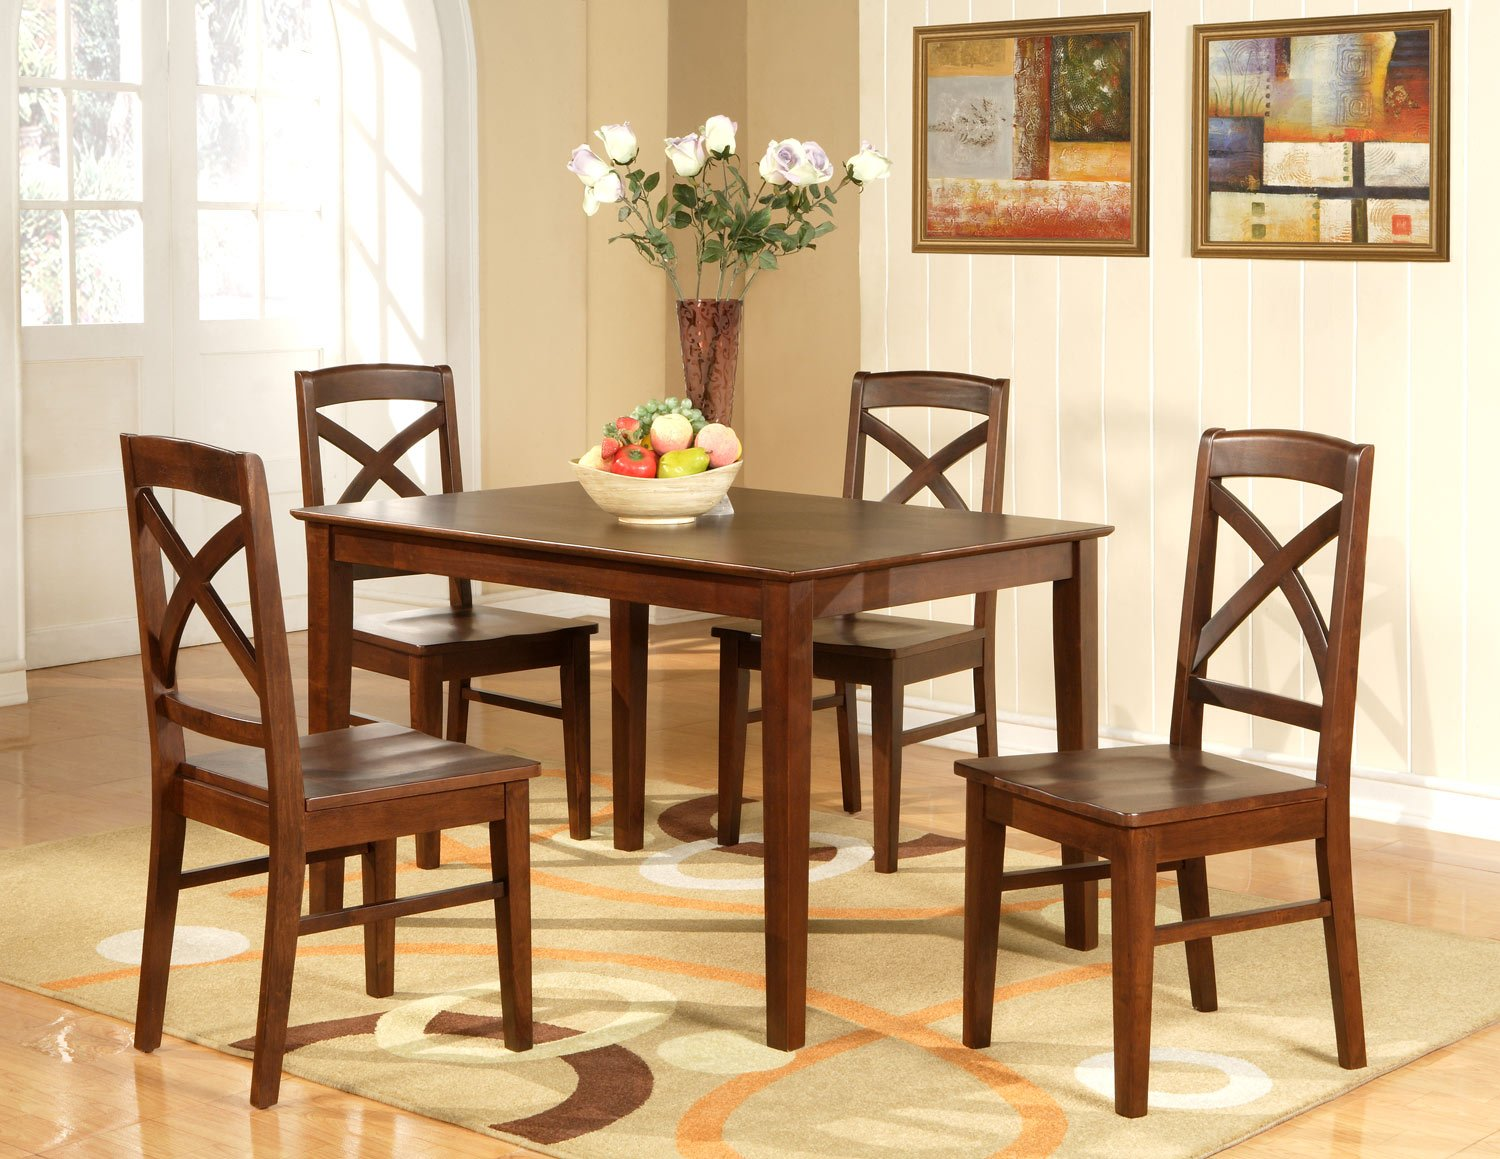 Lisbon 5 pc rectangular dinette kitchen table set size 36 x 48 in espresso sku lb5 esp - Rectangle kitchen table sets ...